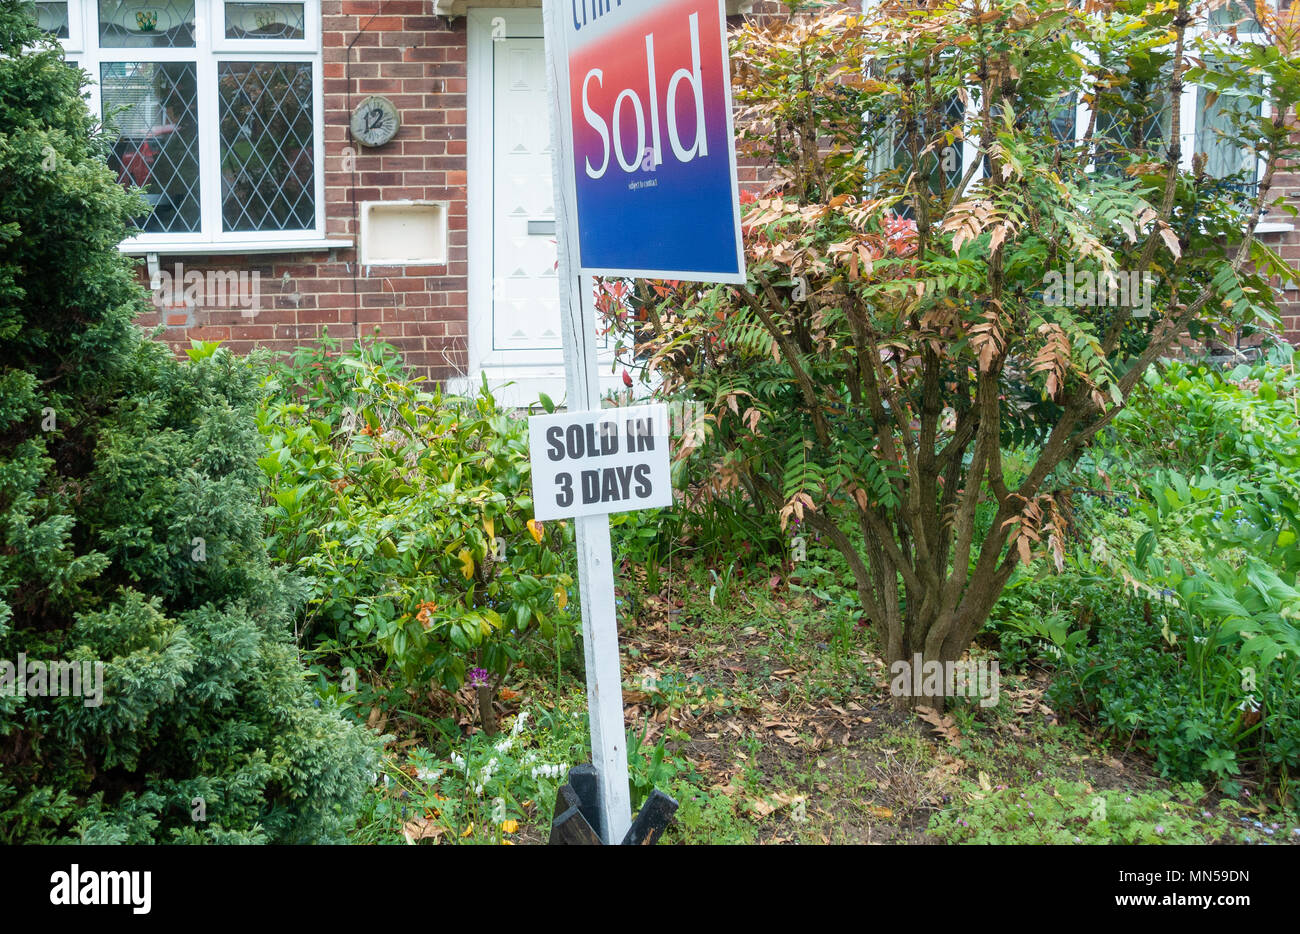 Sold in 3 days sign outside house. England, UK - Stock Image